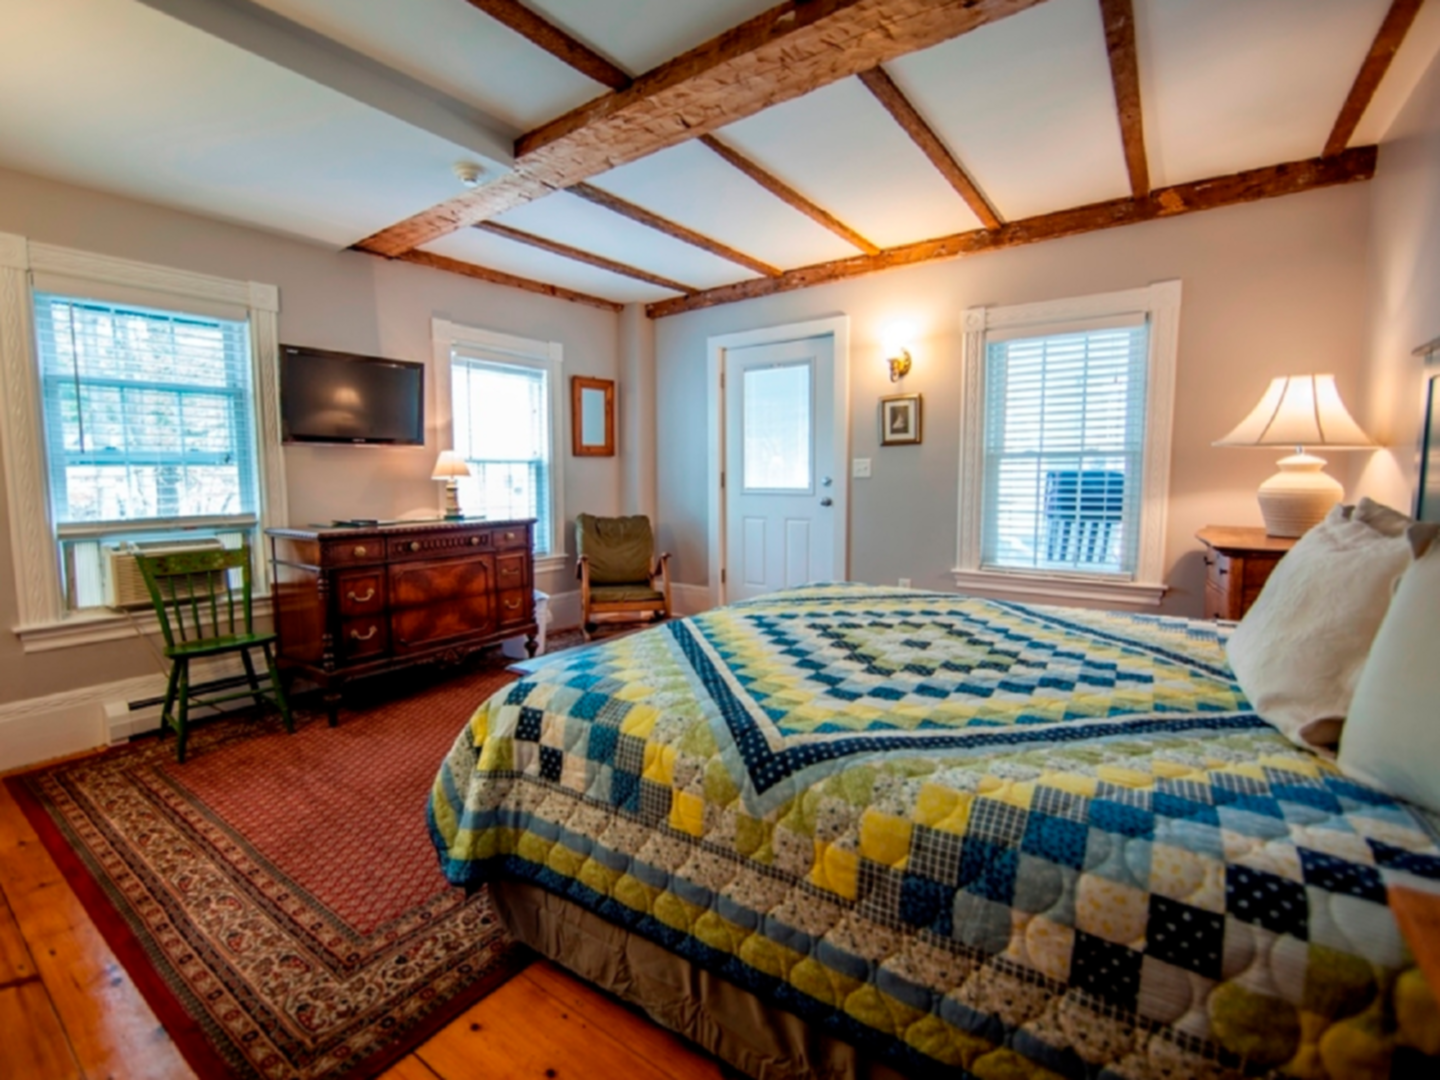 A bedroom with a large bed in a room at Abalonia Inn.